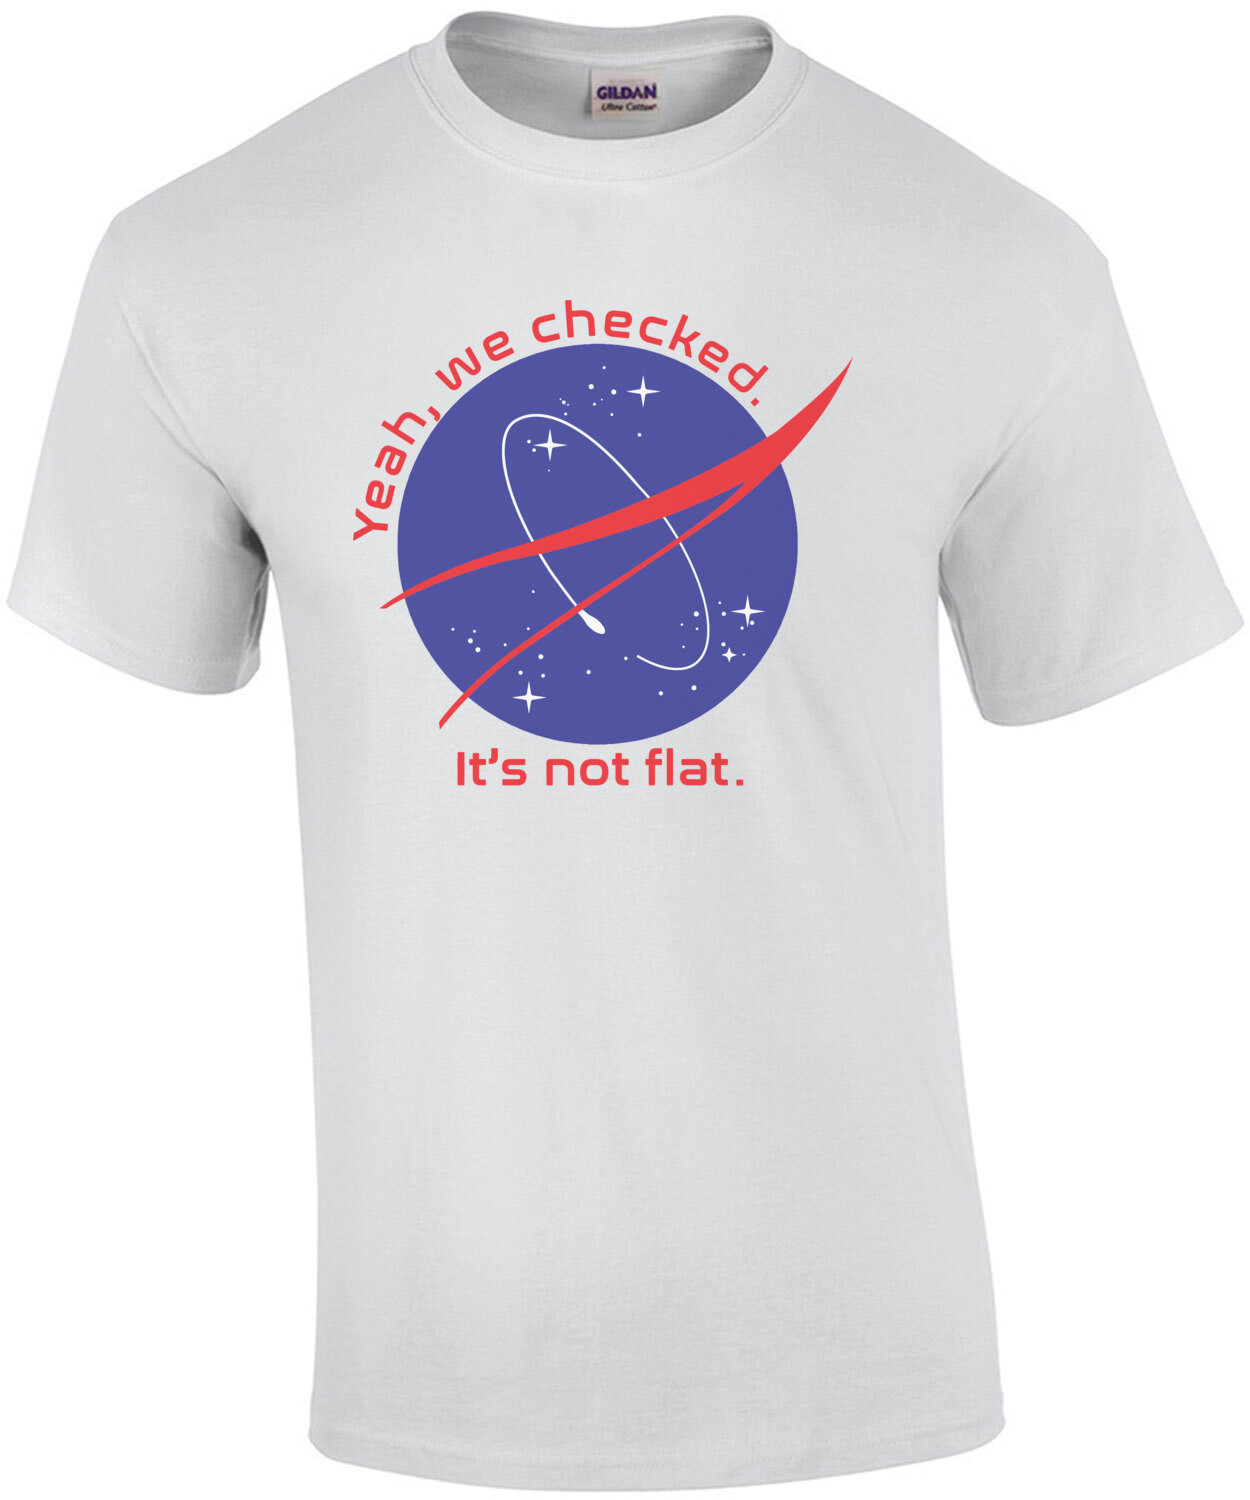 Yeah, we checked. It's not flat. - NASA - Anti-Flat Earther T-Shirt